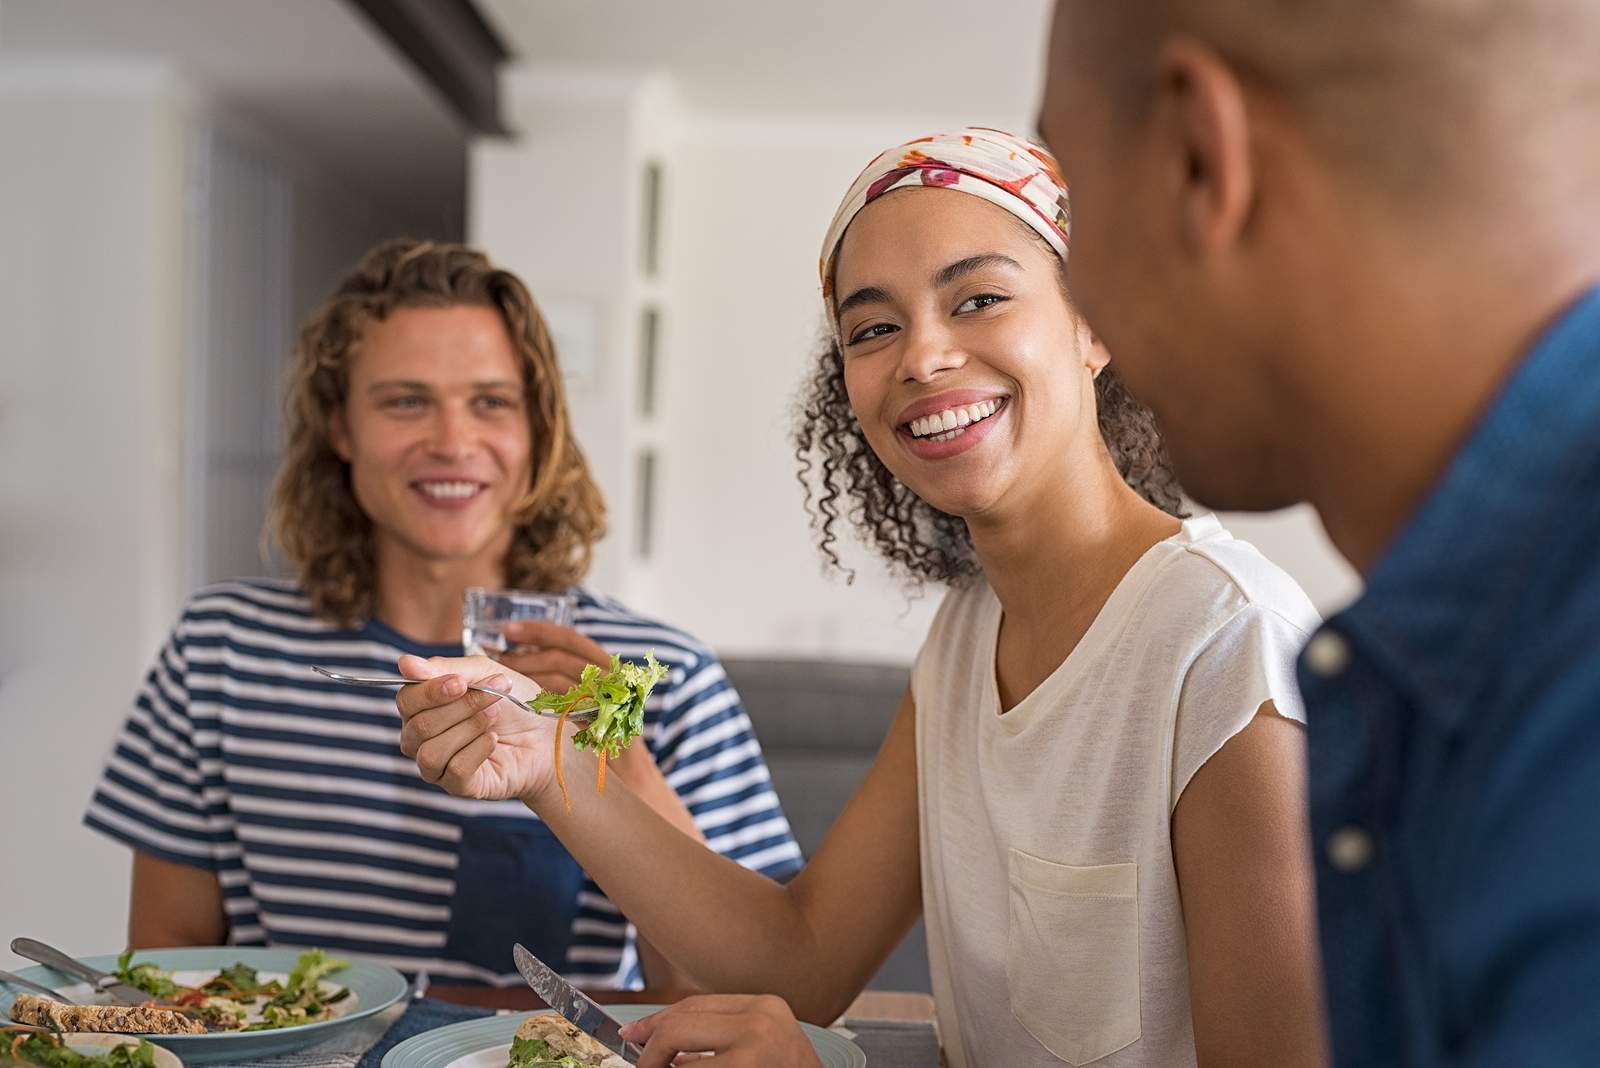 Beautiful african woman eating fresh salad with friends for lunch. Happy cheerful friends in a conversation during lunch at home. Young friends meeting each other for healthy meal.